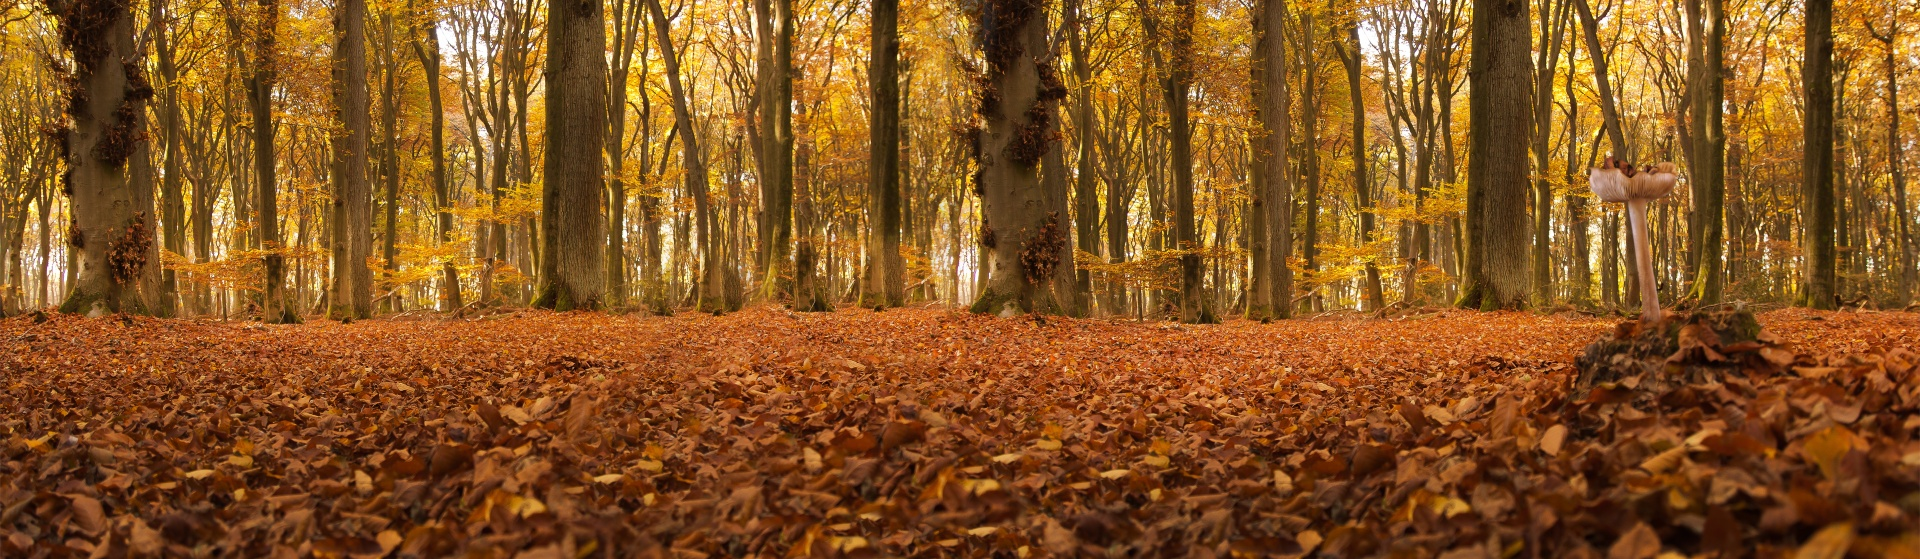 Free Fall Nature Wallpaper Autumn Forest Panorama Free Stock Photo Public Domain